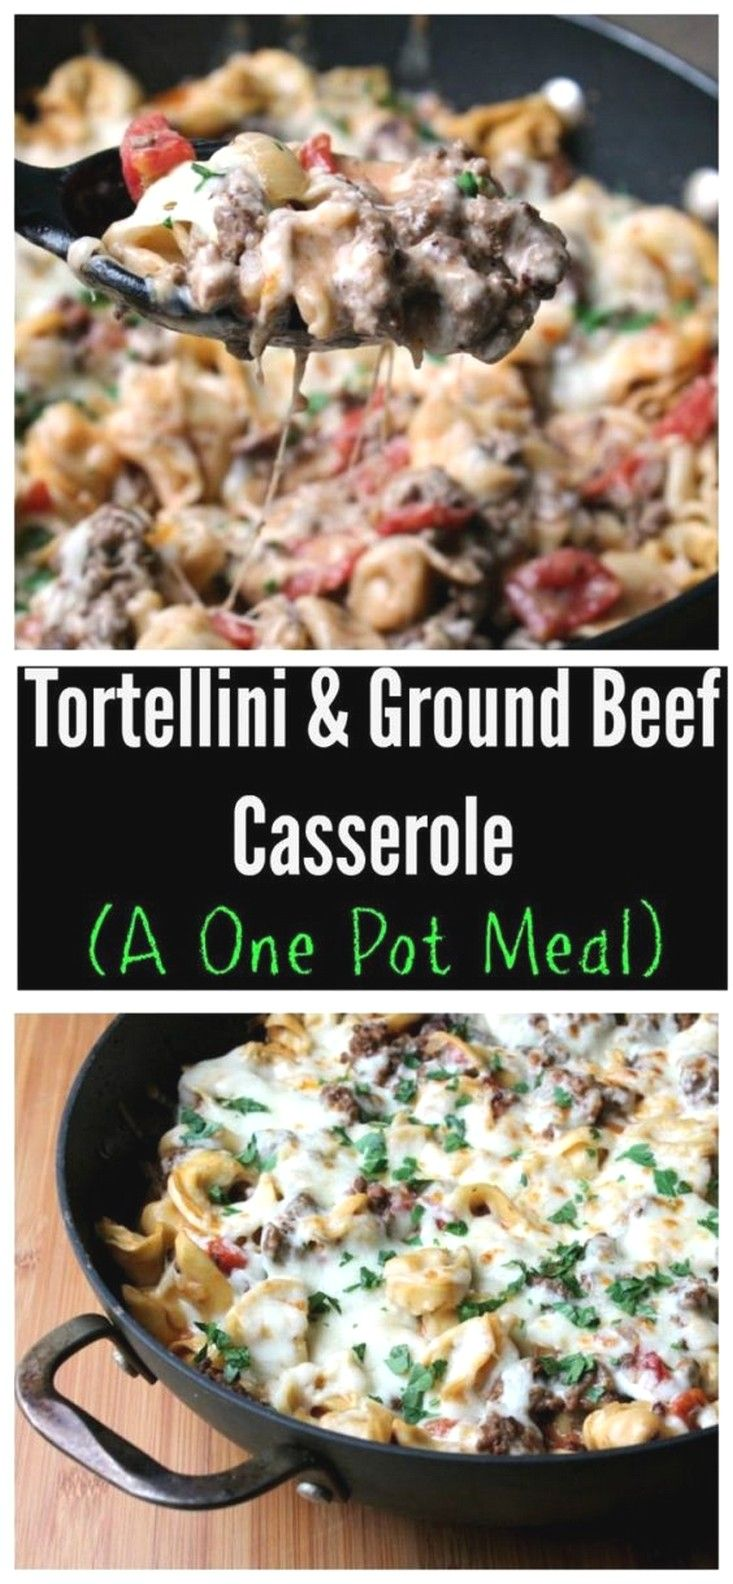 One Pot Tortellini and Ground Beef Casserole | Easy Beef Recipes Ideas images